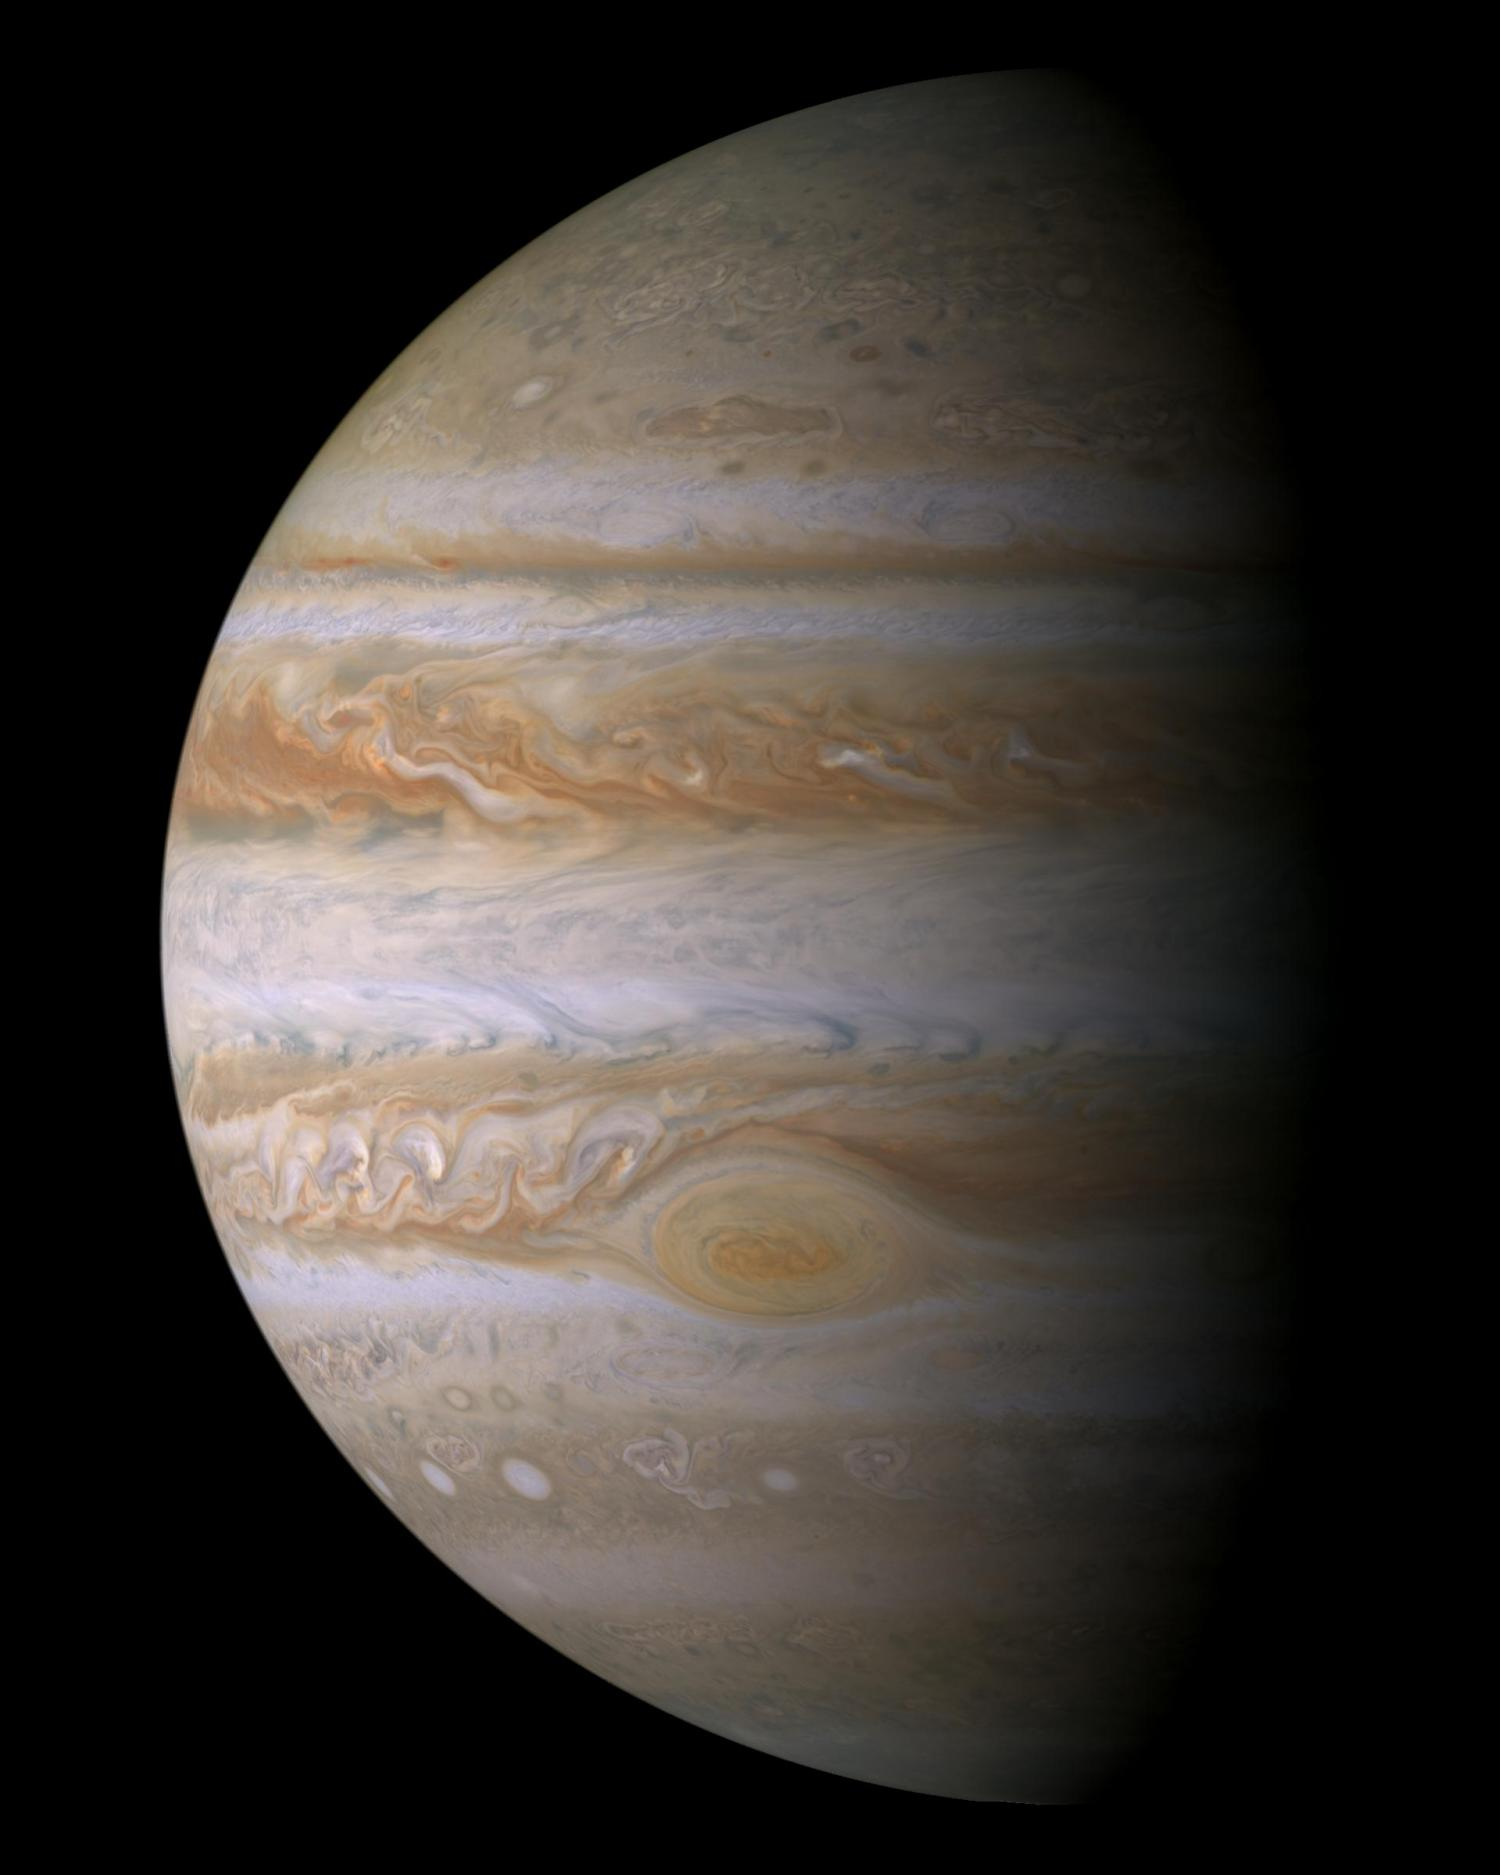 NASA probe to pass over Jupiter's 'Great Red Spot' on July 10